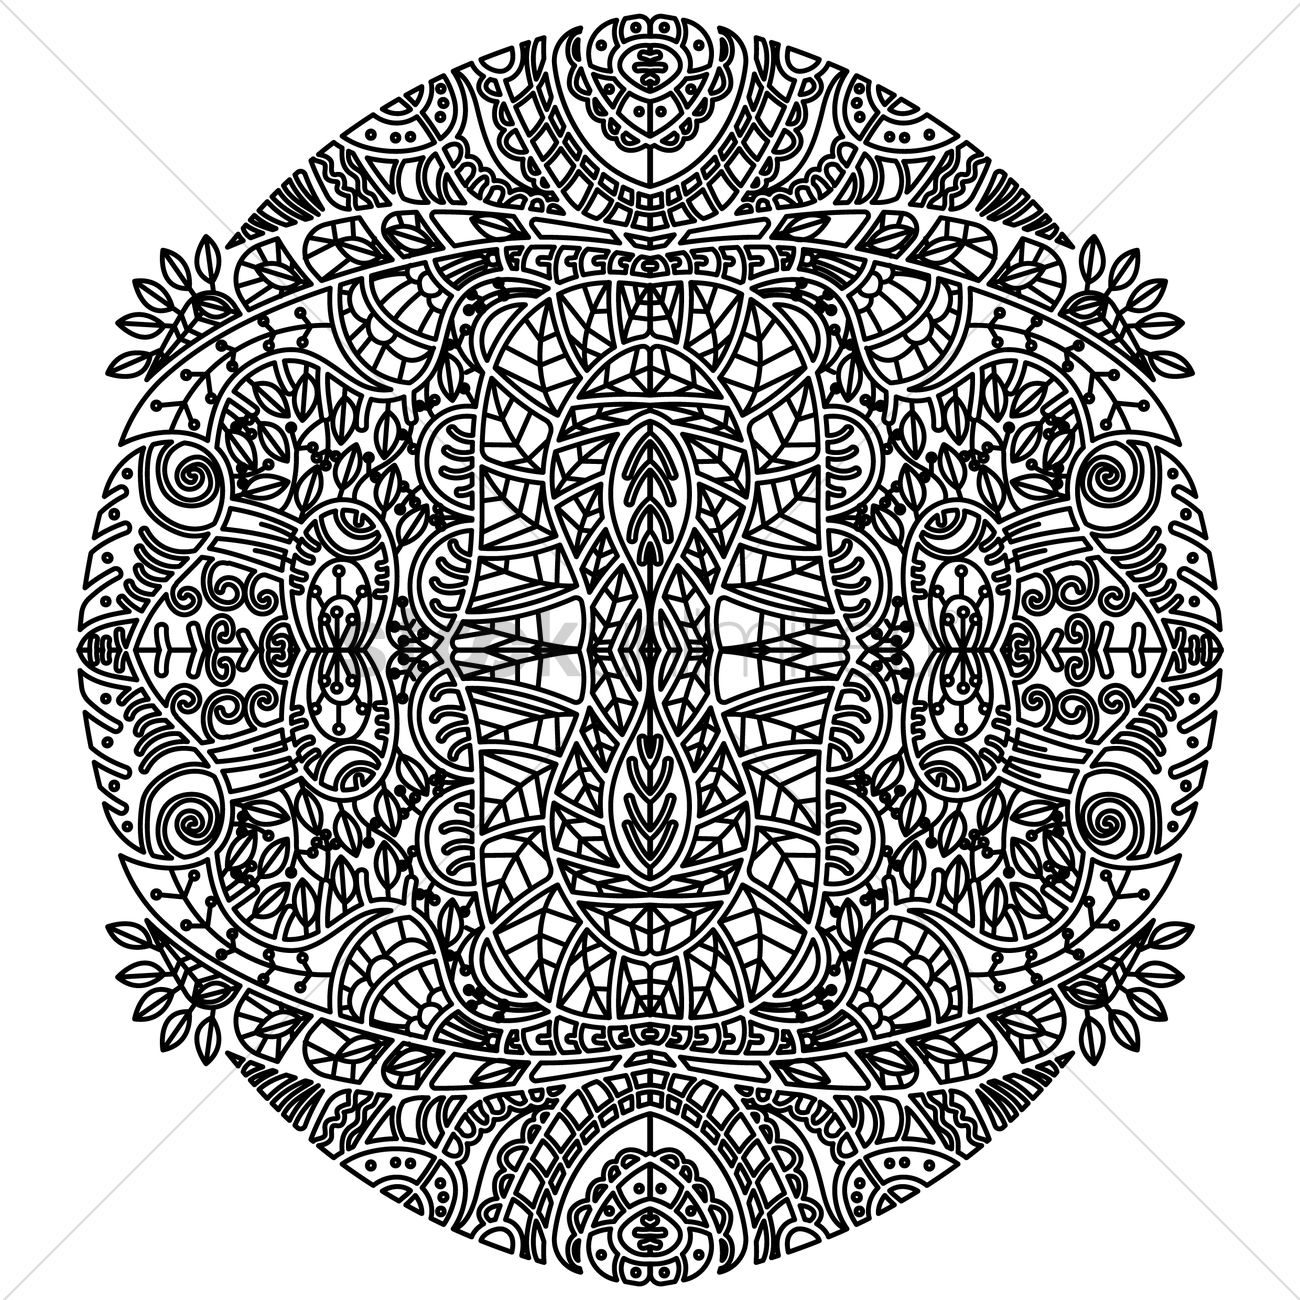 Uncategorized Intricate Pattern abstract intricate pattern design vector image 1959755 graphic